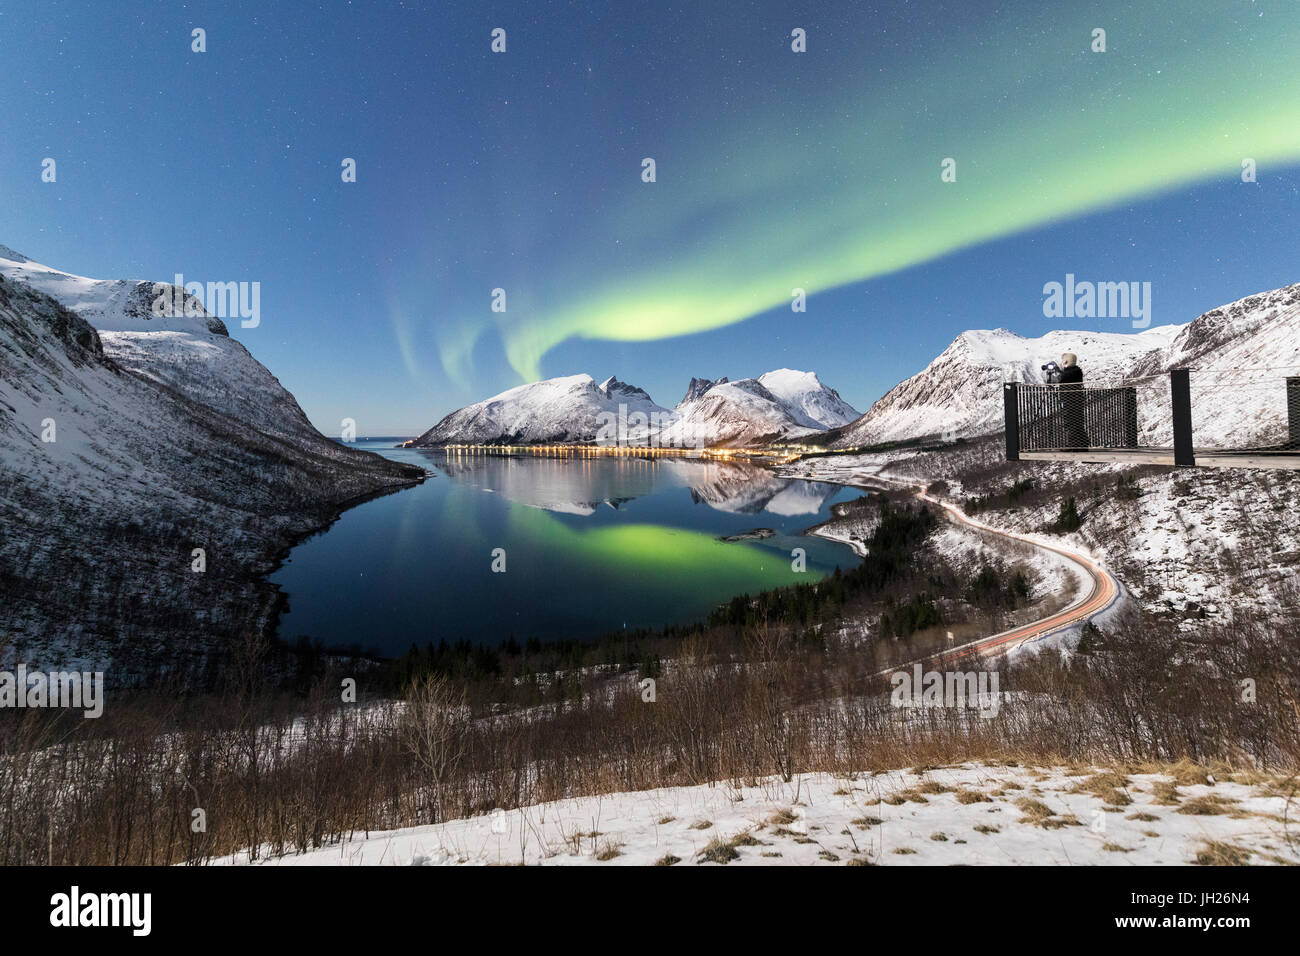 Photographer on platform admires the Northern lights and stars reflected in the cold sea, Bergsbotn, Senja, Troms, - Stock Image